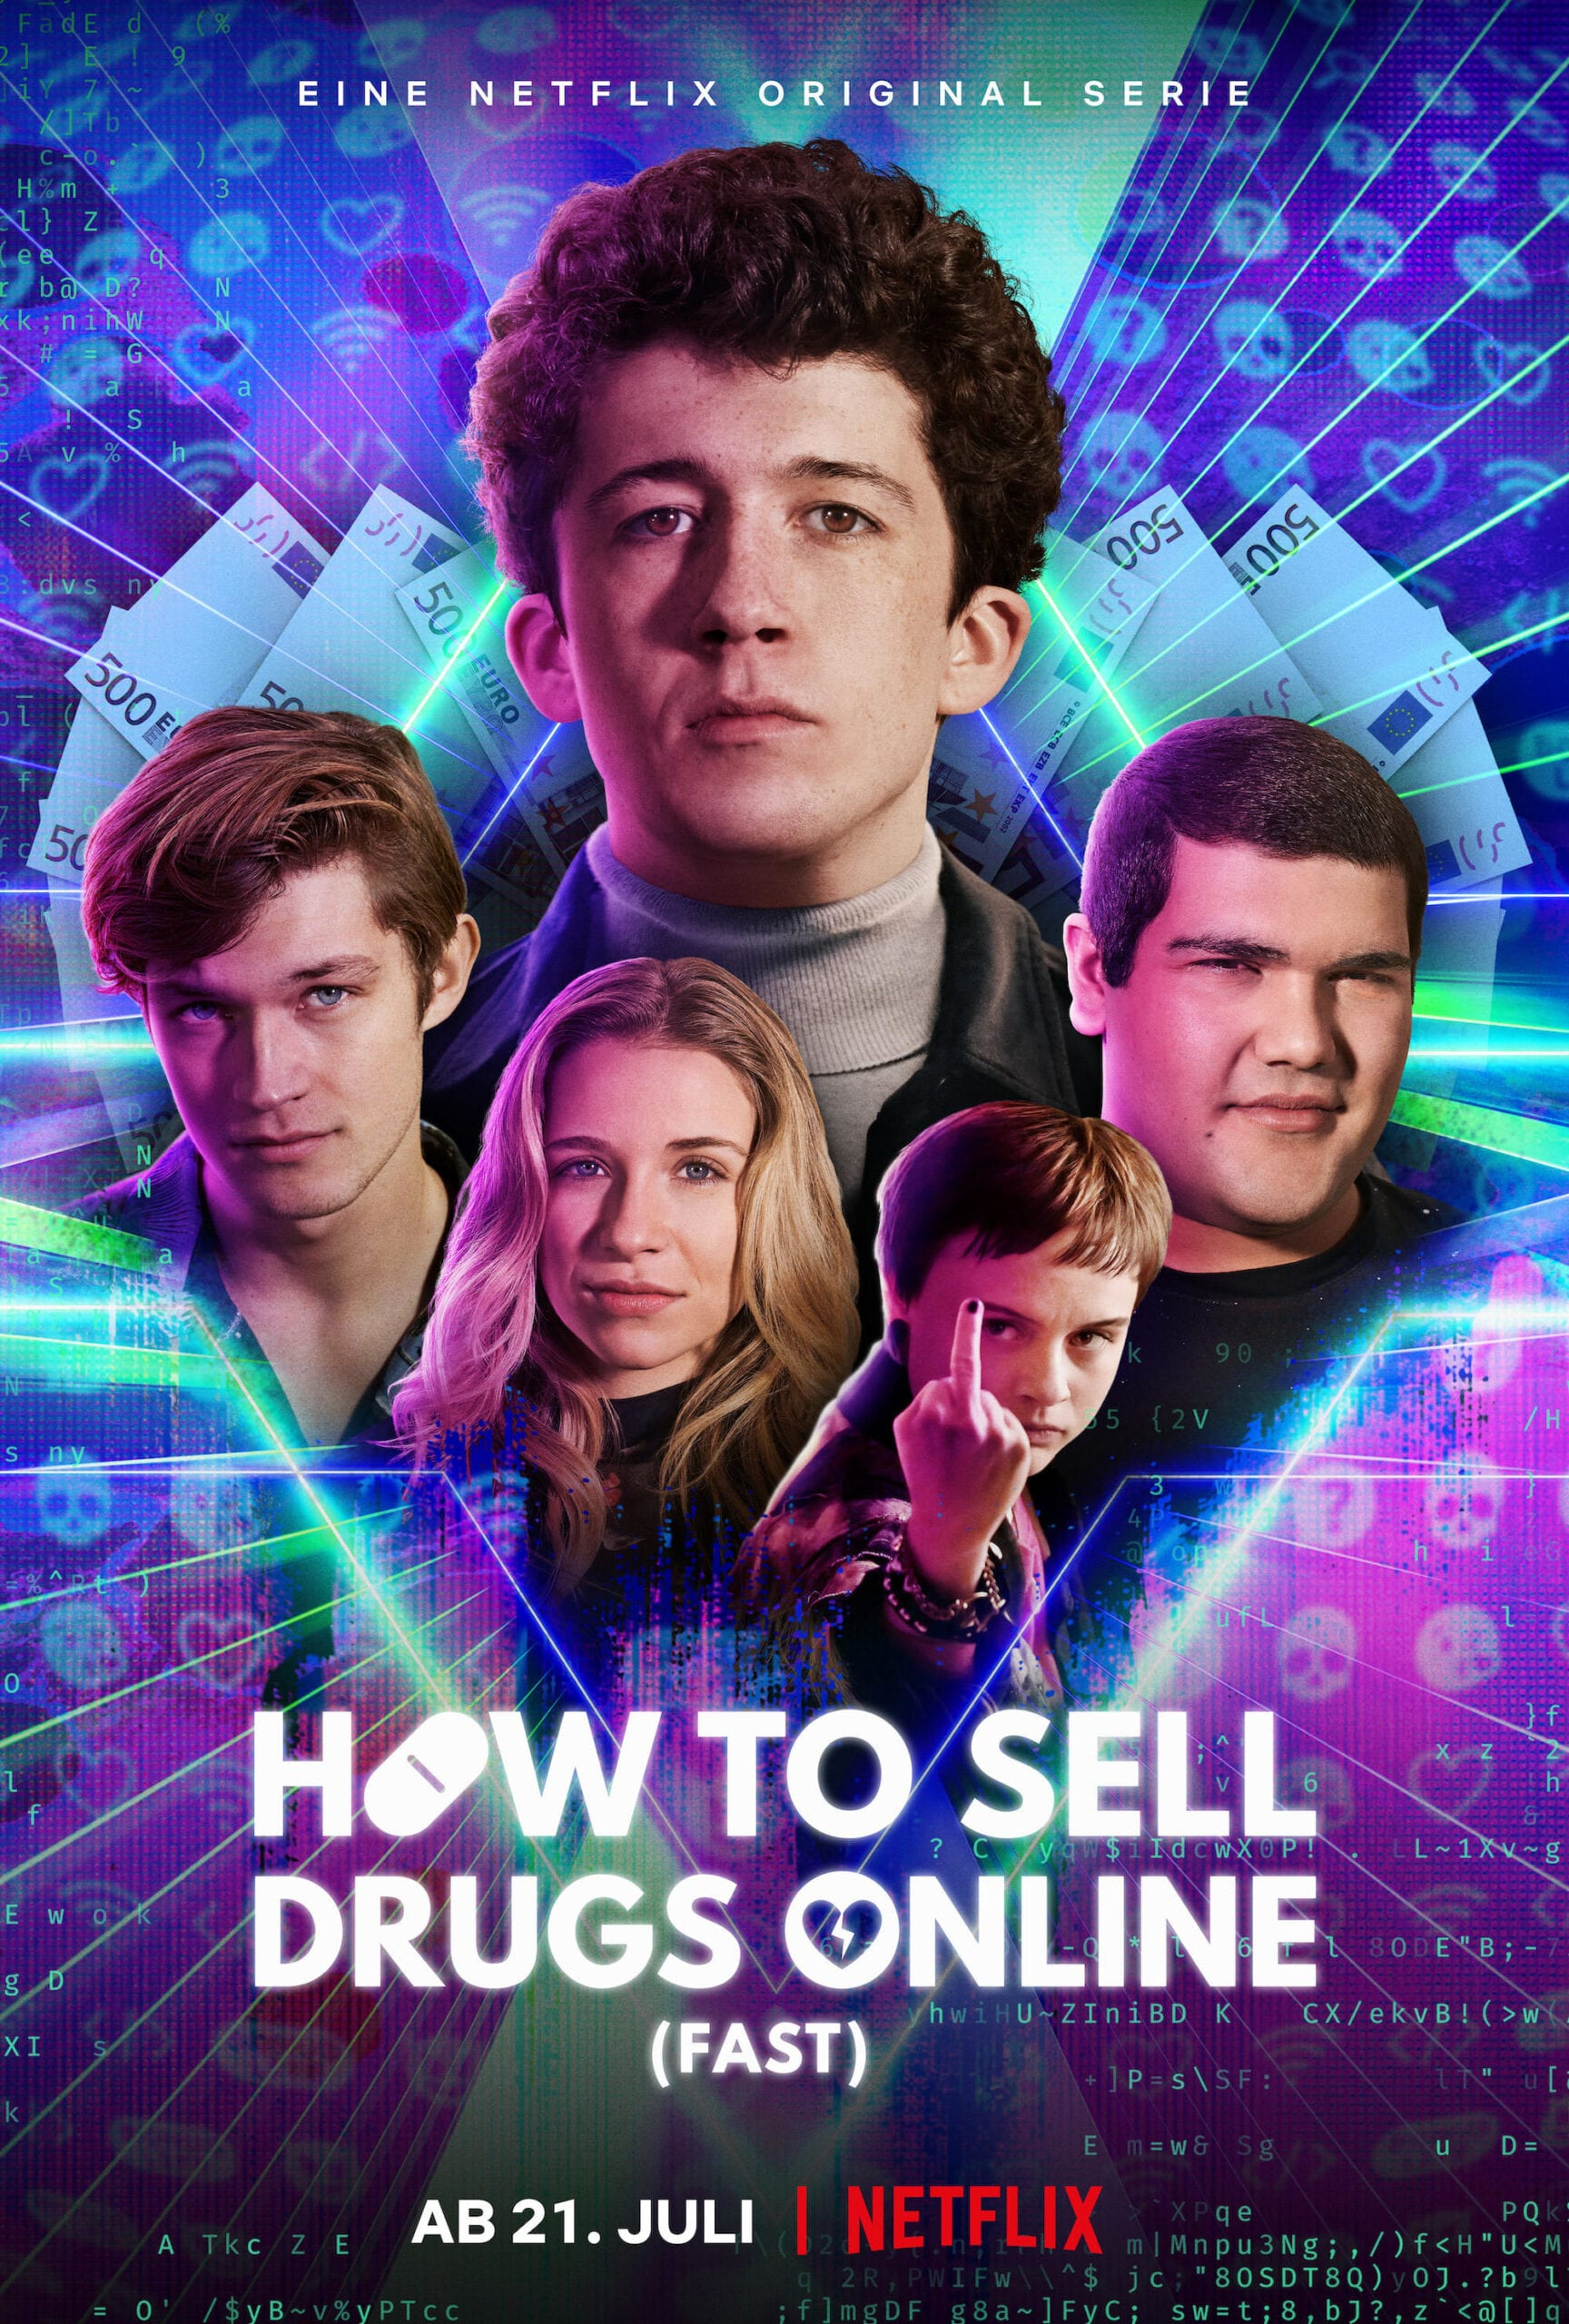 How to Sell Drugs Online (Fast) teaser image